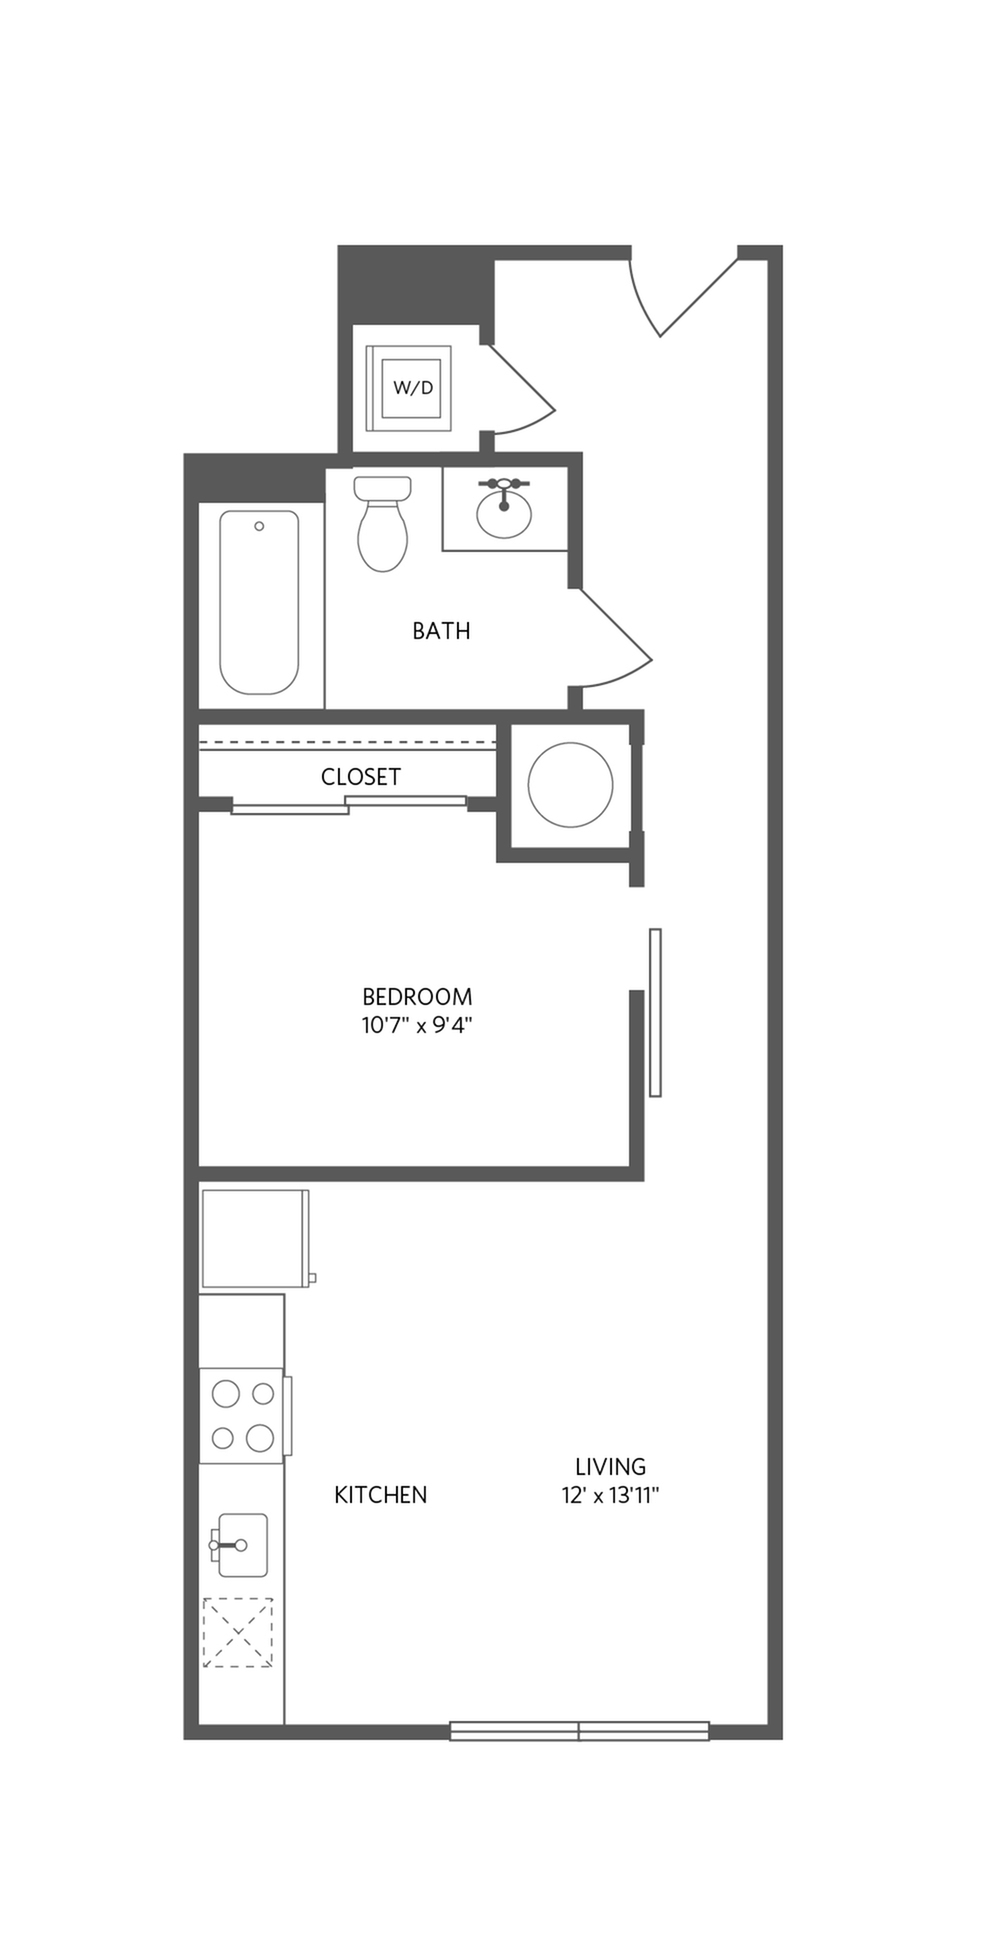 546 square foot one bedroom one bath apartment floorplan image